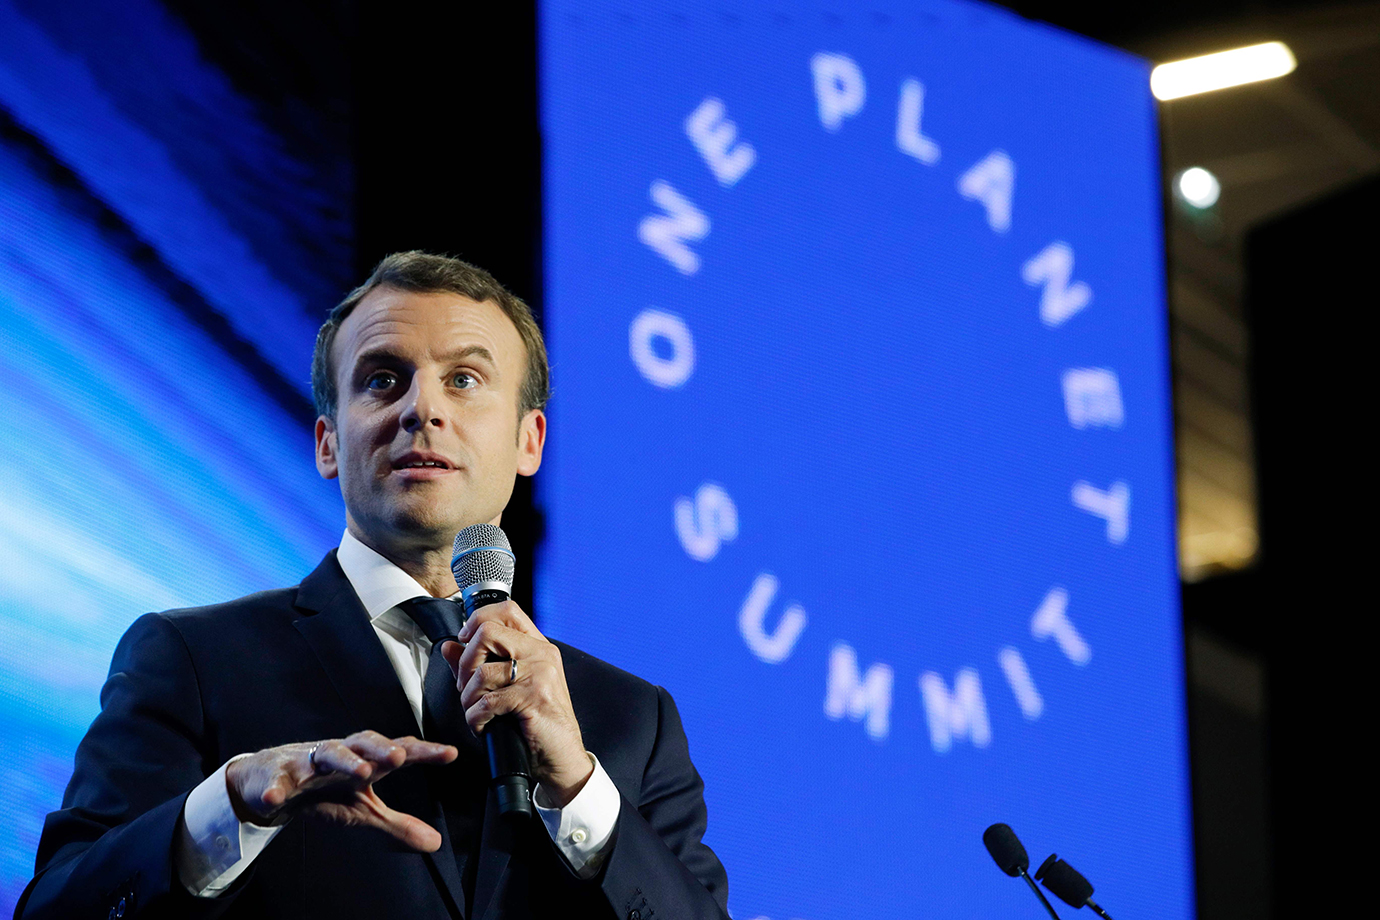 French President Emmanuel Macron delivers a speech during the 'Tech for Planet' event at the 'Statio